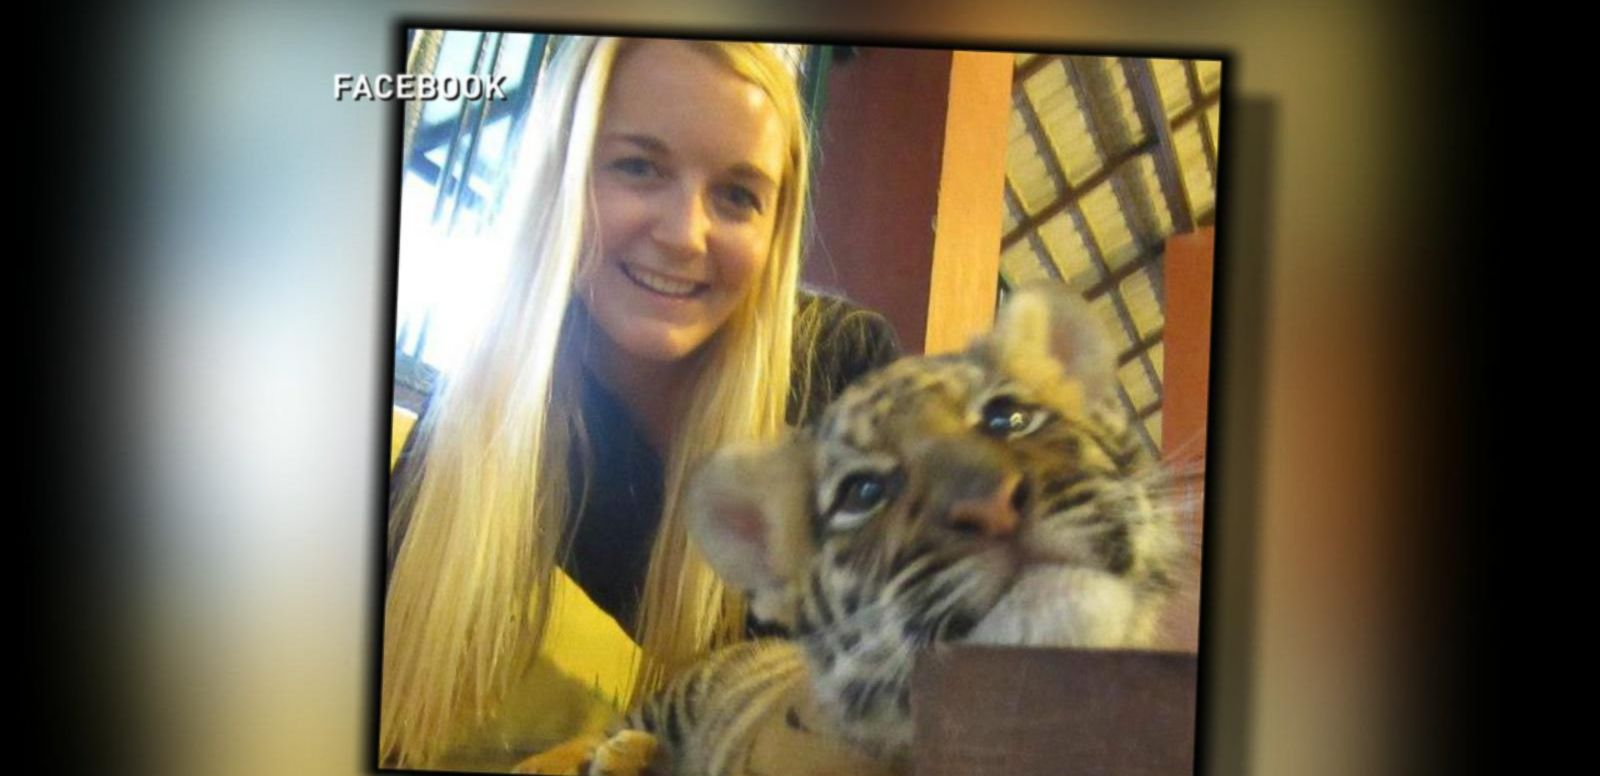 VIDEO: Missing Student Disappeared Without a Trace